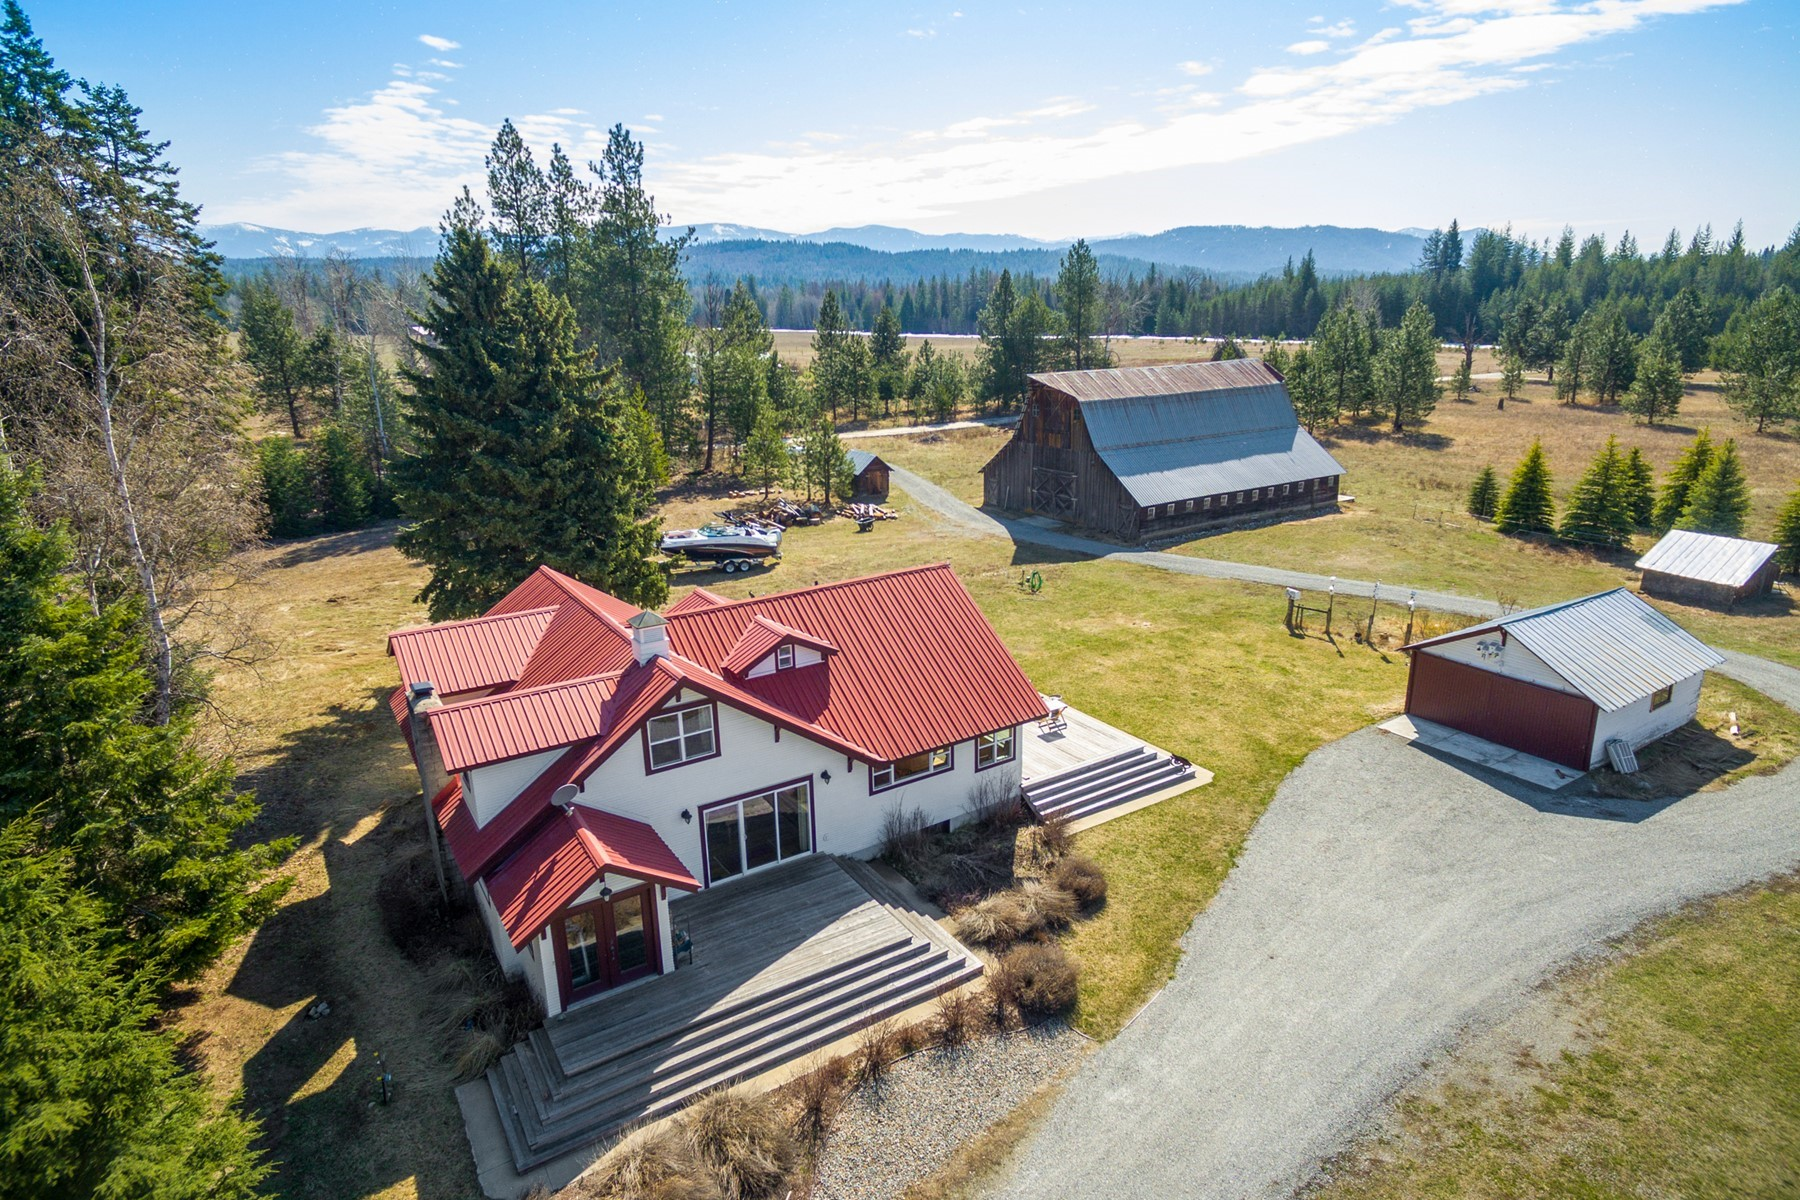 Single Family Homes for Active at Selle Valley Farm 20+ Acre Horse Property 247 Grouse Creek Cutoff Sandpoint, Idaho 83864 United States